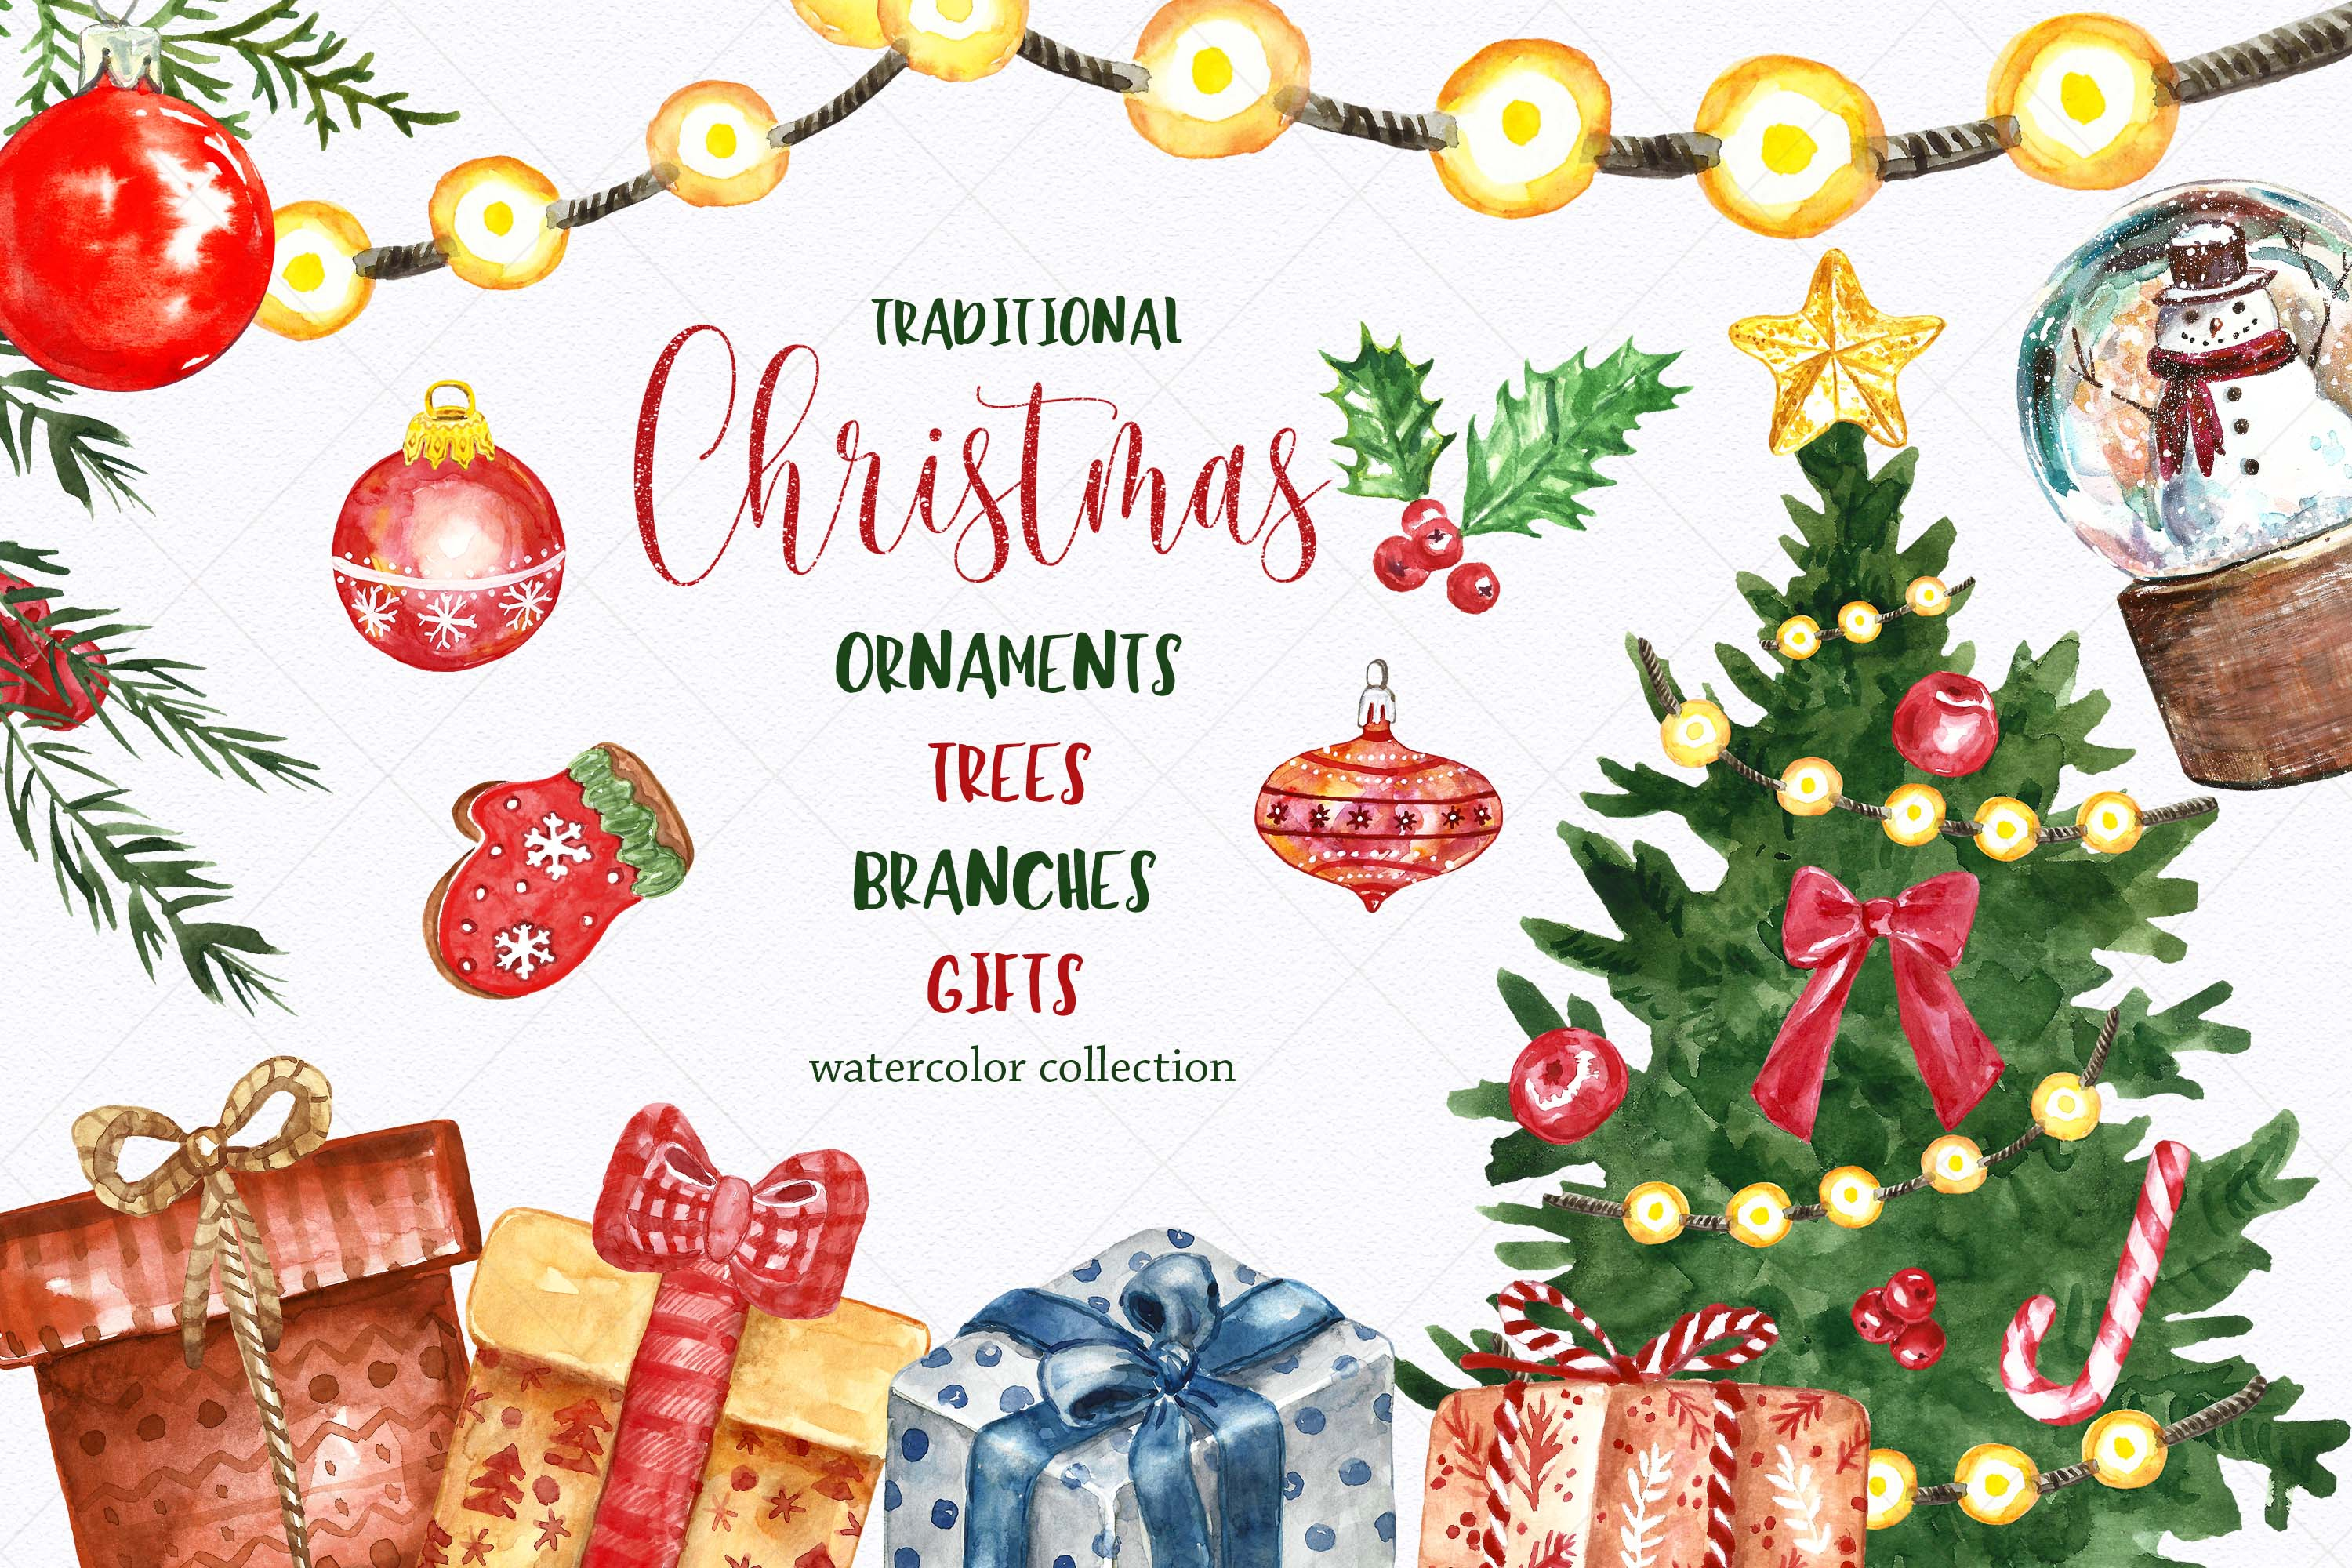 Watercolor Christmas Clipart Tree Ornaments Gift boxes.